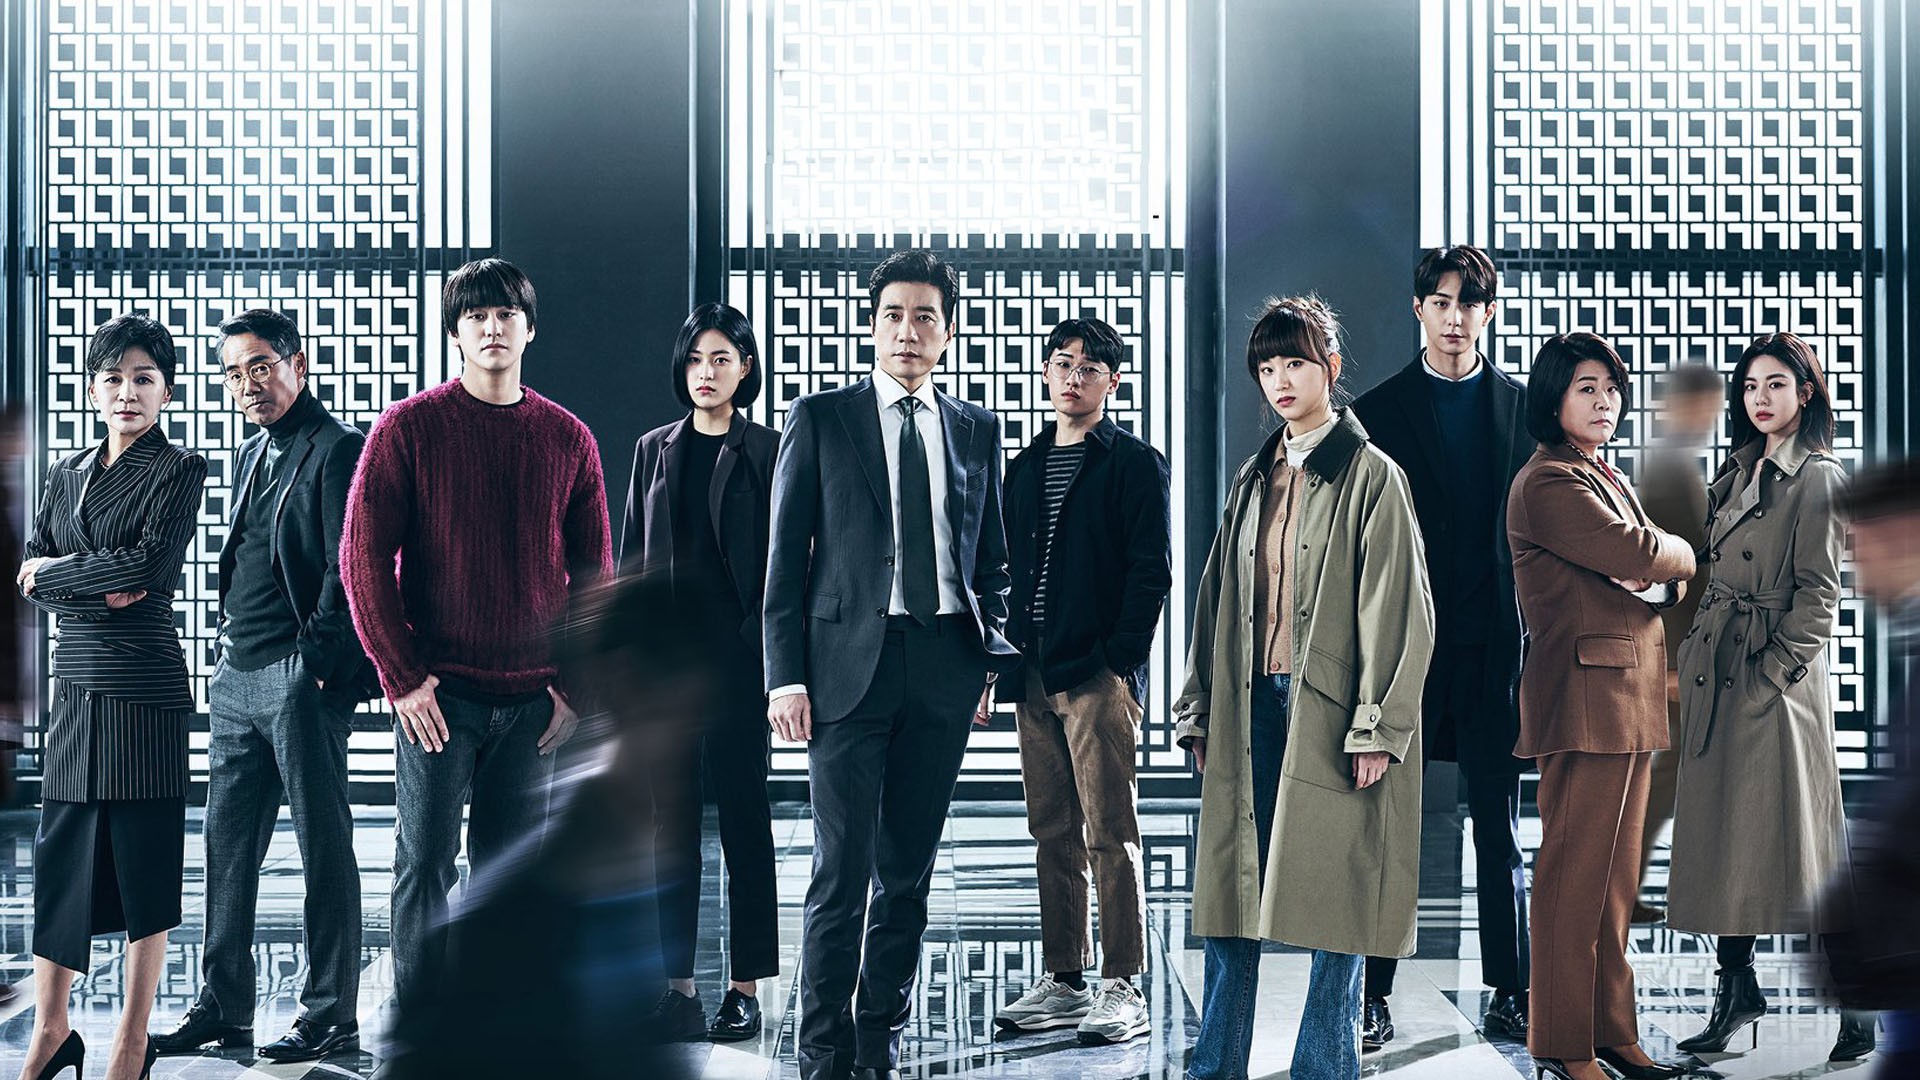 """Good Ol' Review: JTBC's """"Law School"""" a Fascinating and Unique Character-Driven Look at the Justice System"""